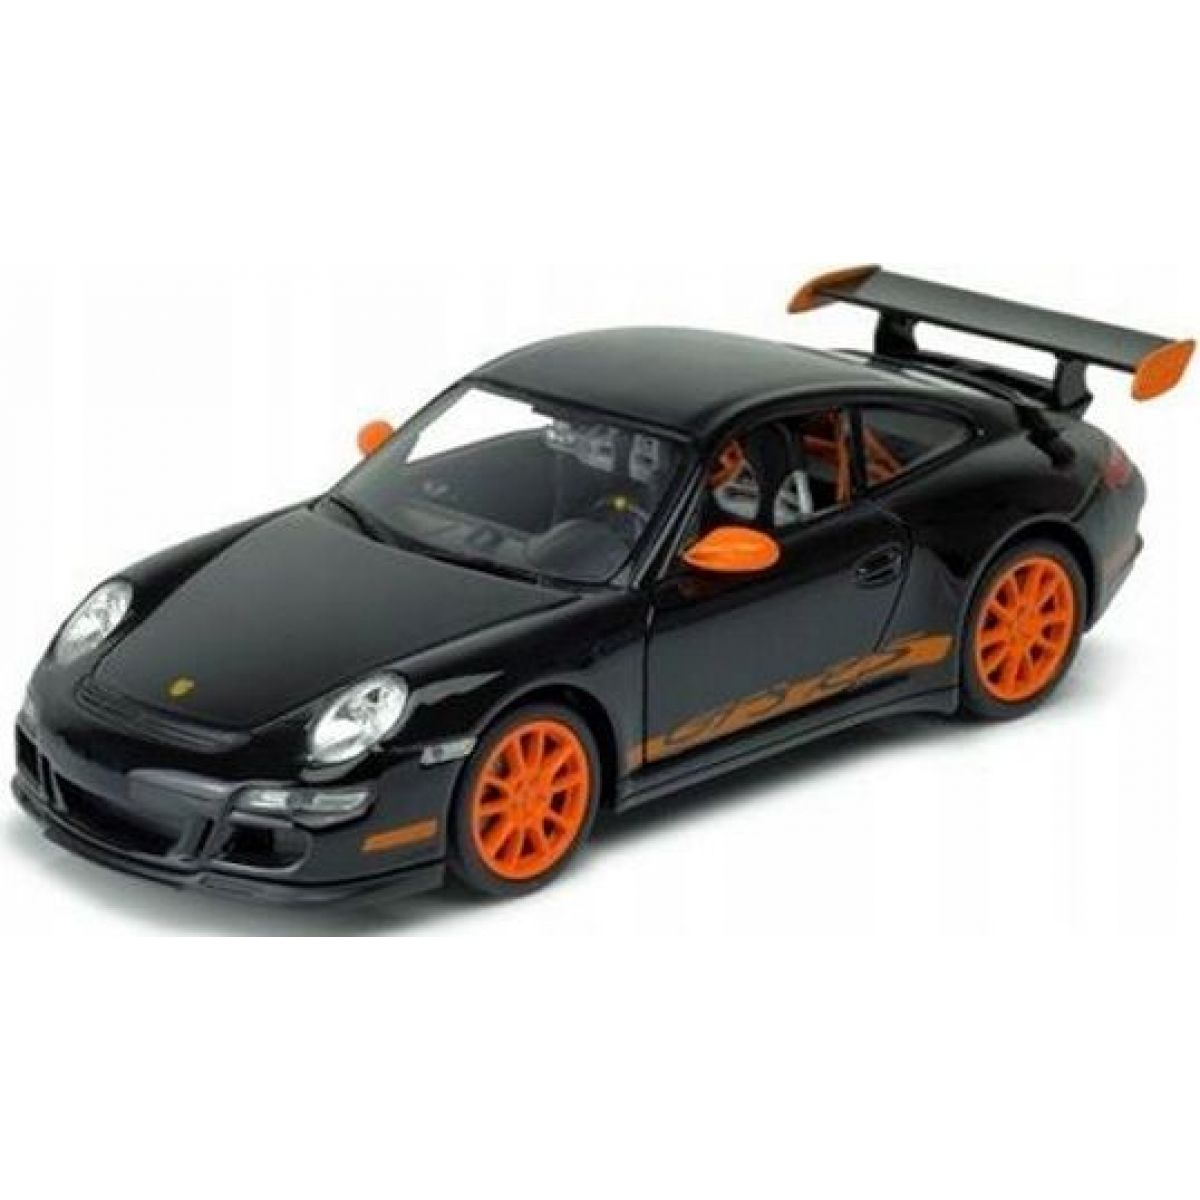 Welly Auto Porsche 911GT3 RS 1:24 černé